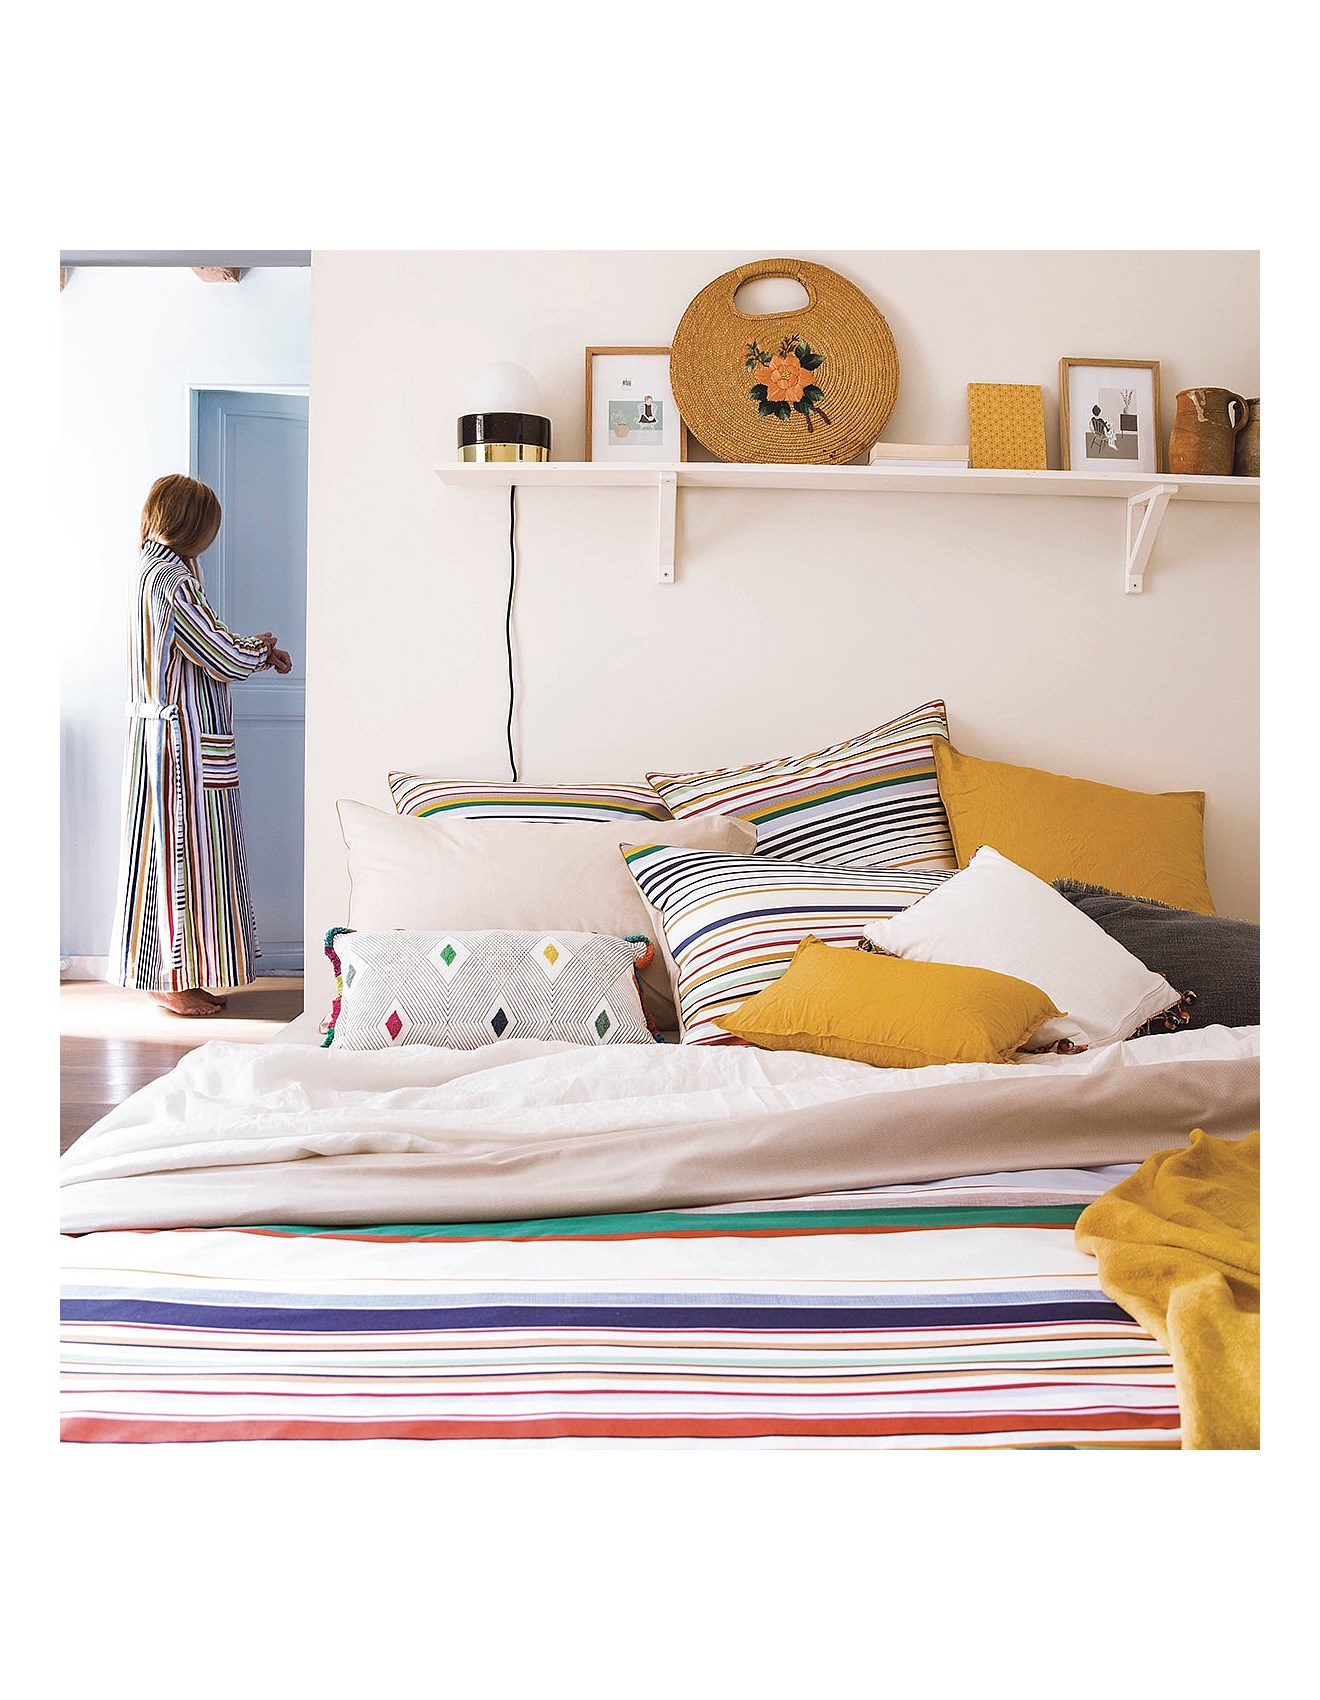 ANTONIO SINGLE BED FITTED SHEET 94X200